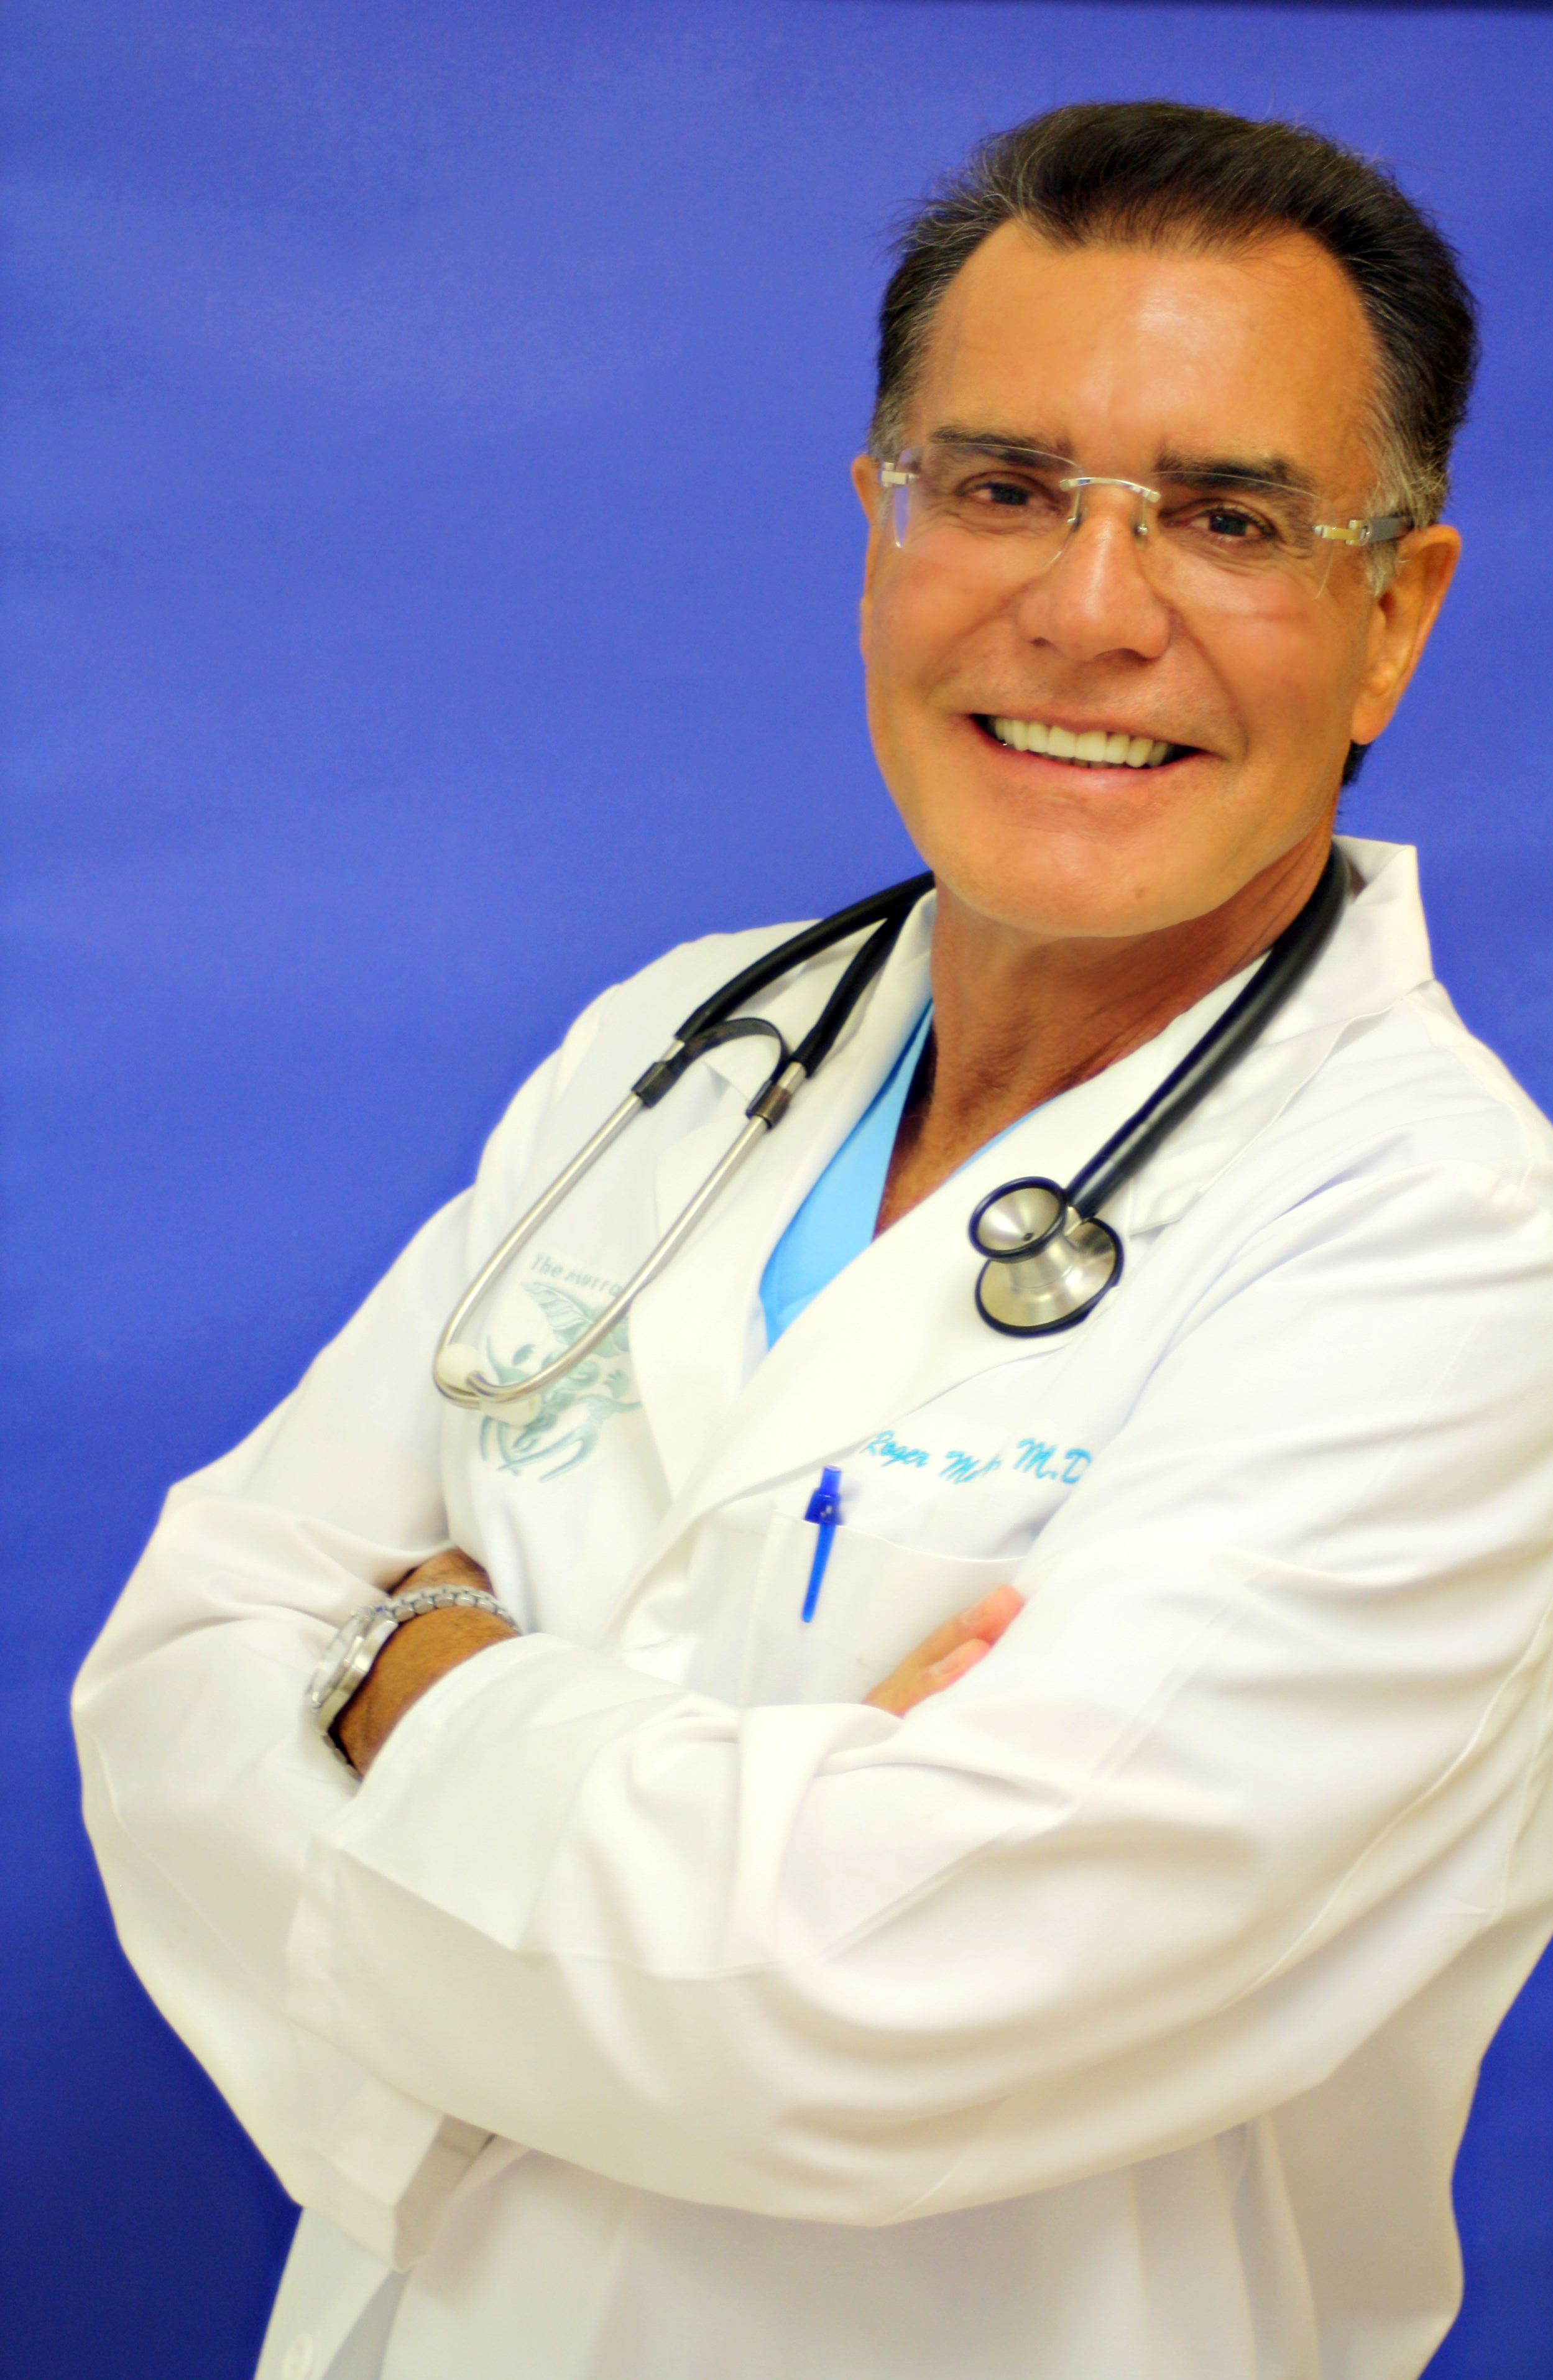 Meet Roger Y. Murray,  M.D., F.A.B.V.L.M. Fellow of the American Board Of Venous and Lymphatic Medicine